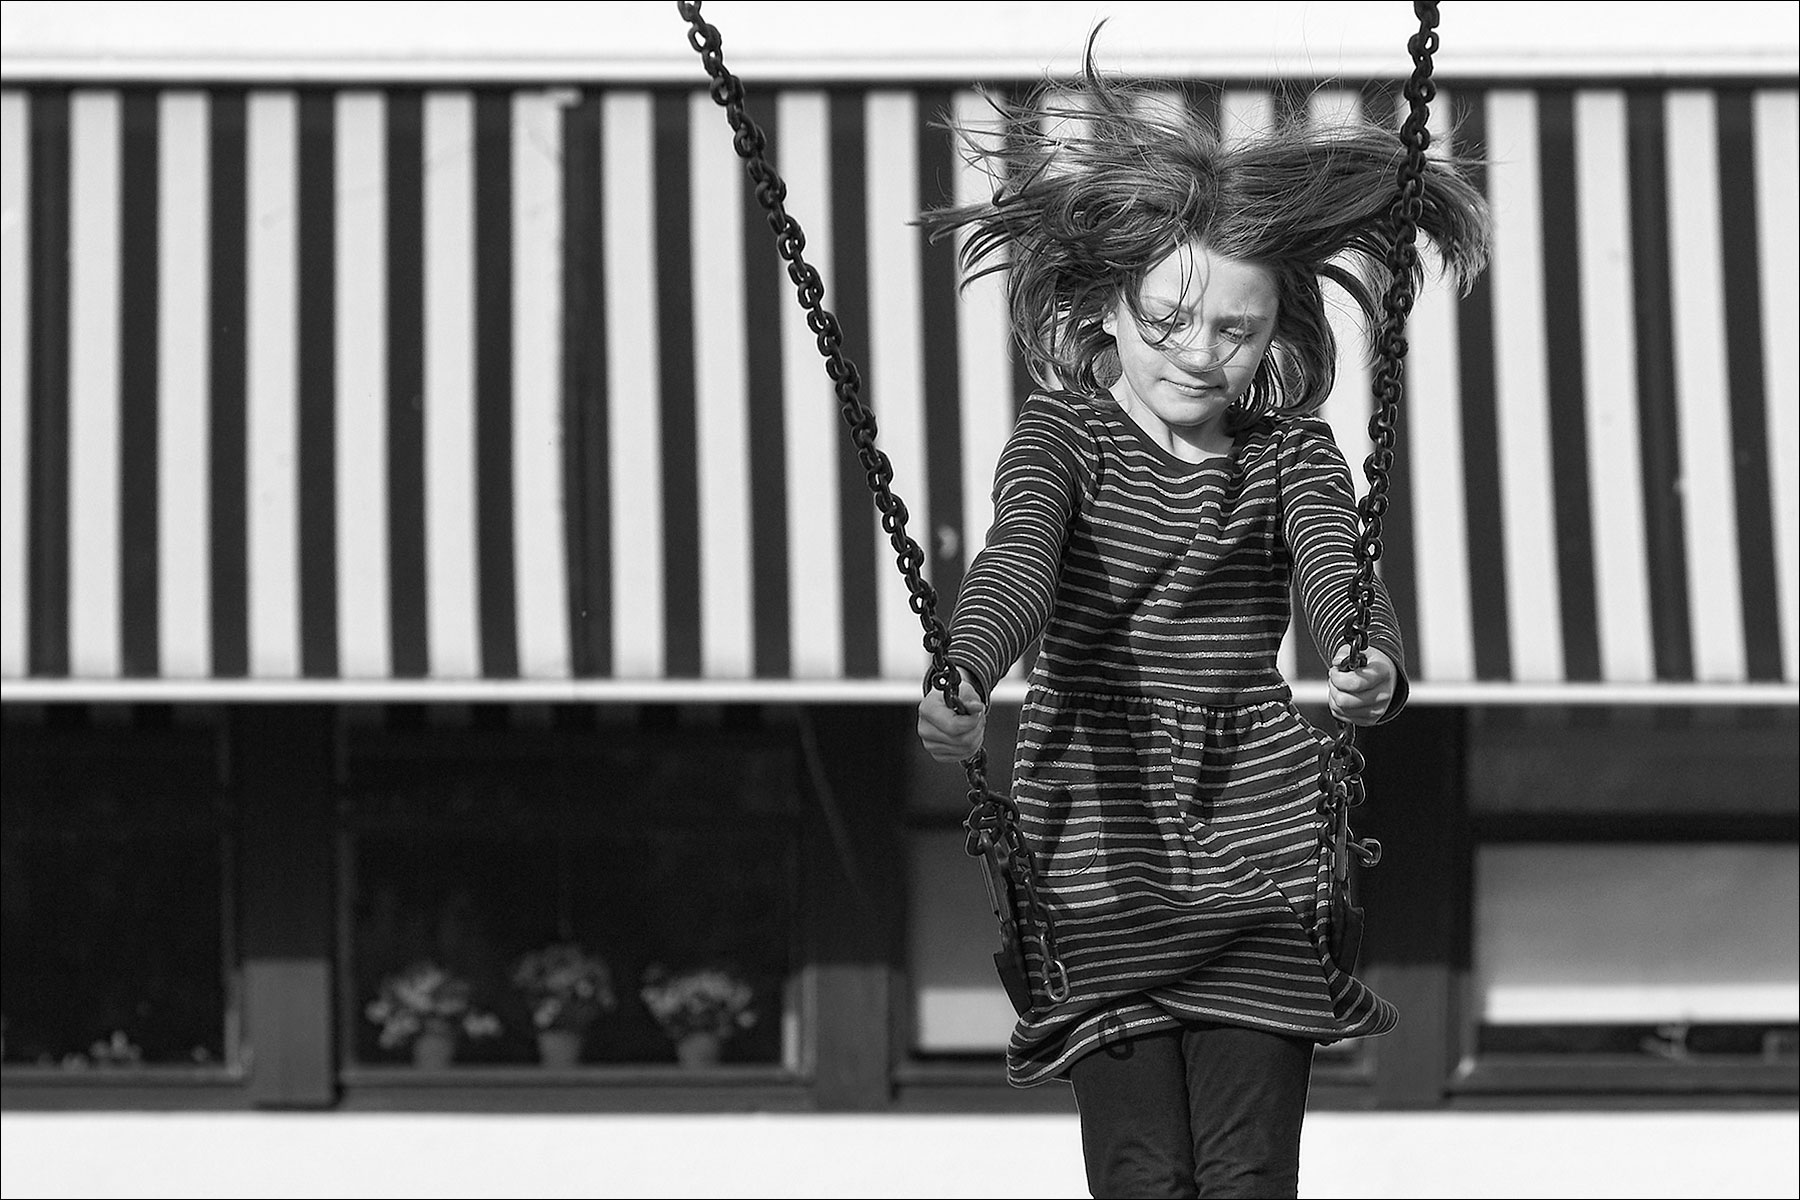 On a swing at Salt Spring Elementary ©johncameron.ca